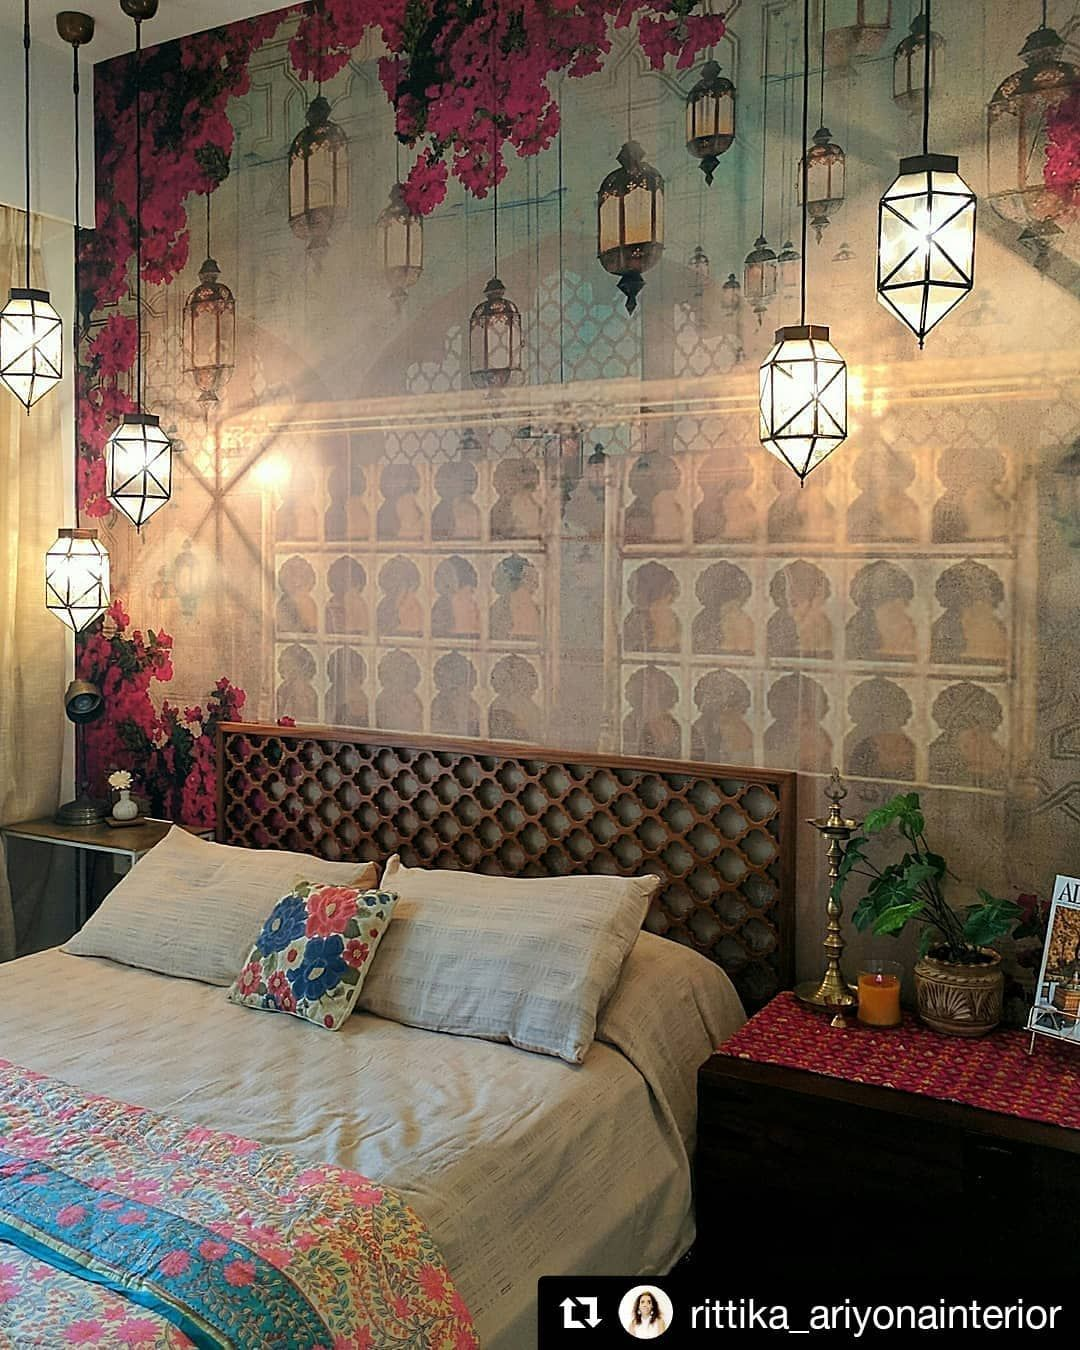 The 3rd Most Liked Post Of The Year On Our Last Few Hours Of Vacation Makes My Heart Want To Join In Aboh Indian Bedroom Decor Bedroom Vintage Stylish Bedroom